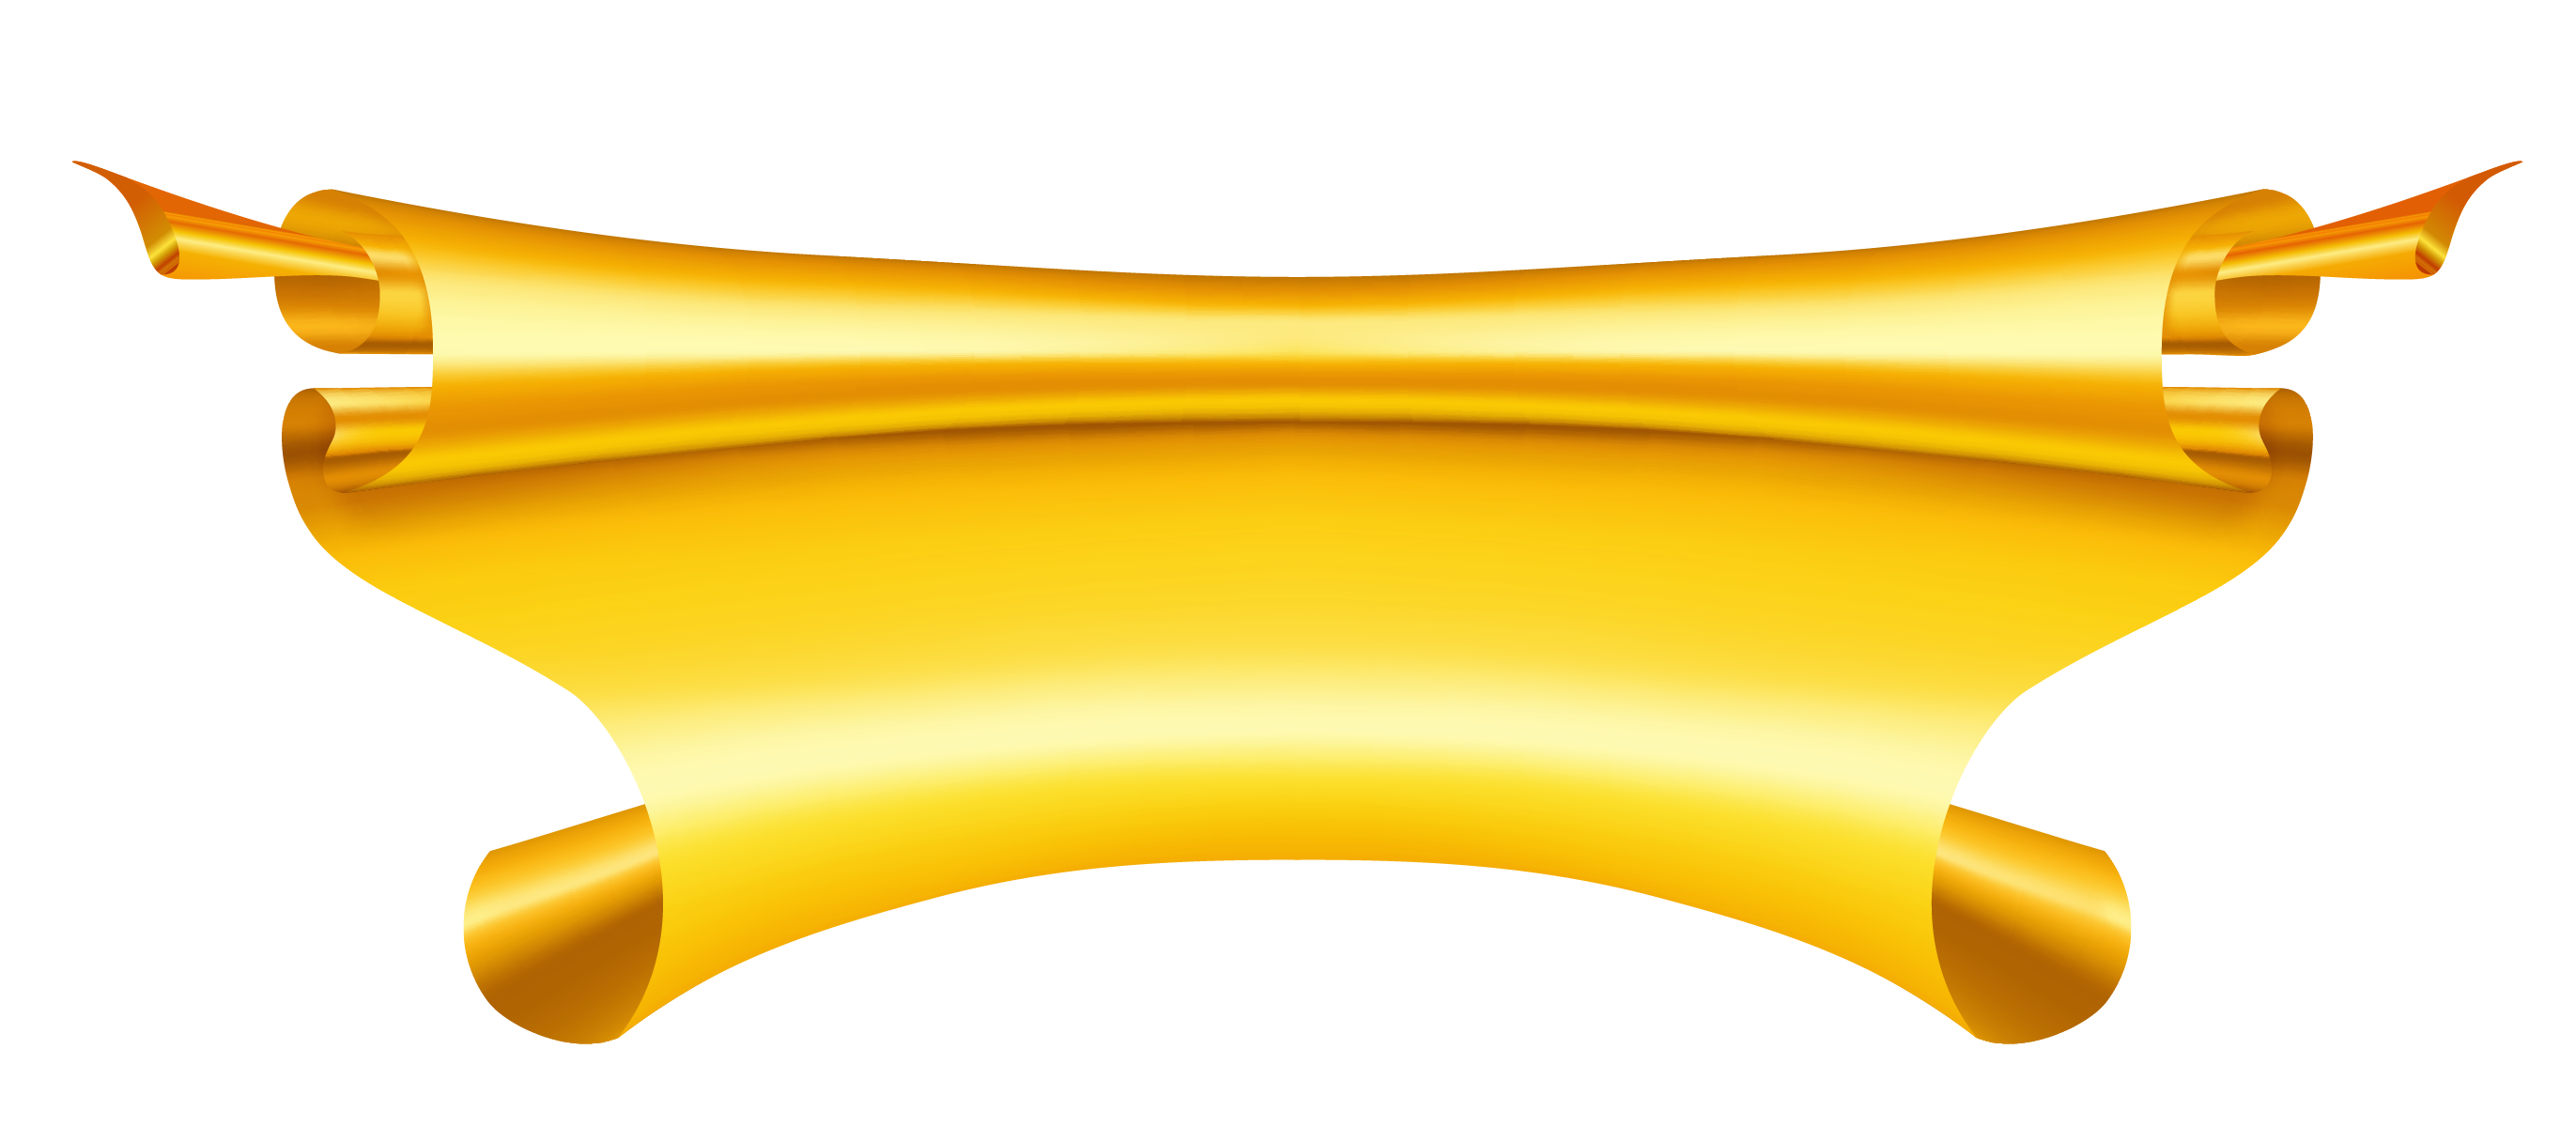 Gold ribbon banner png. Clipart gallery yopriceville high